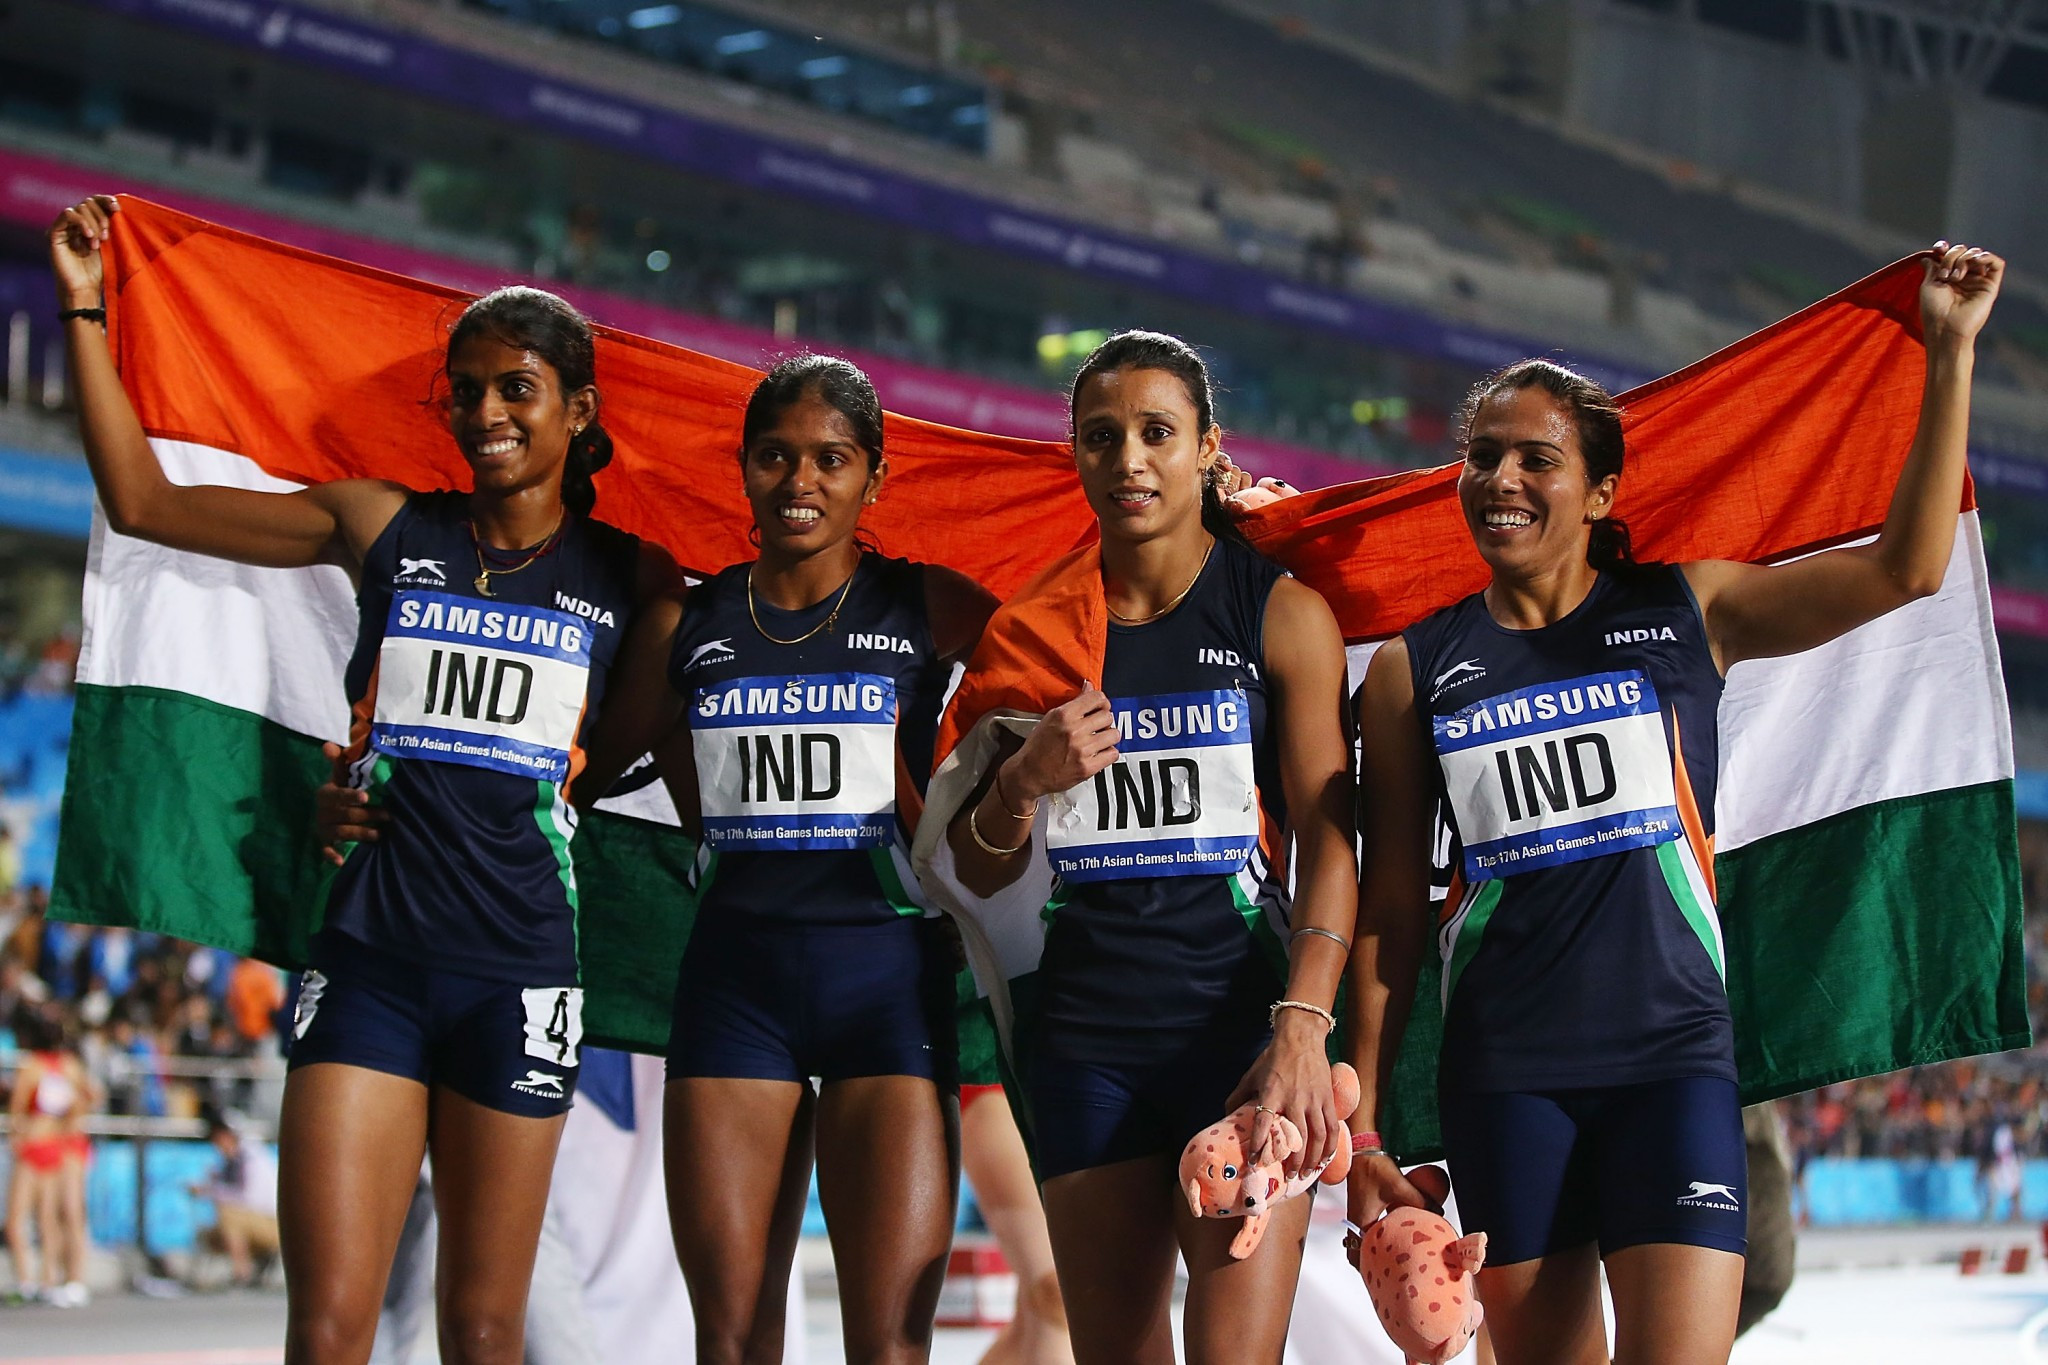 Priyanka Pawar, left, was a part of India's gold medal winning 4x400m relay team at Incheon 2014 ©Getty Images